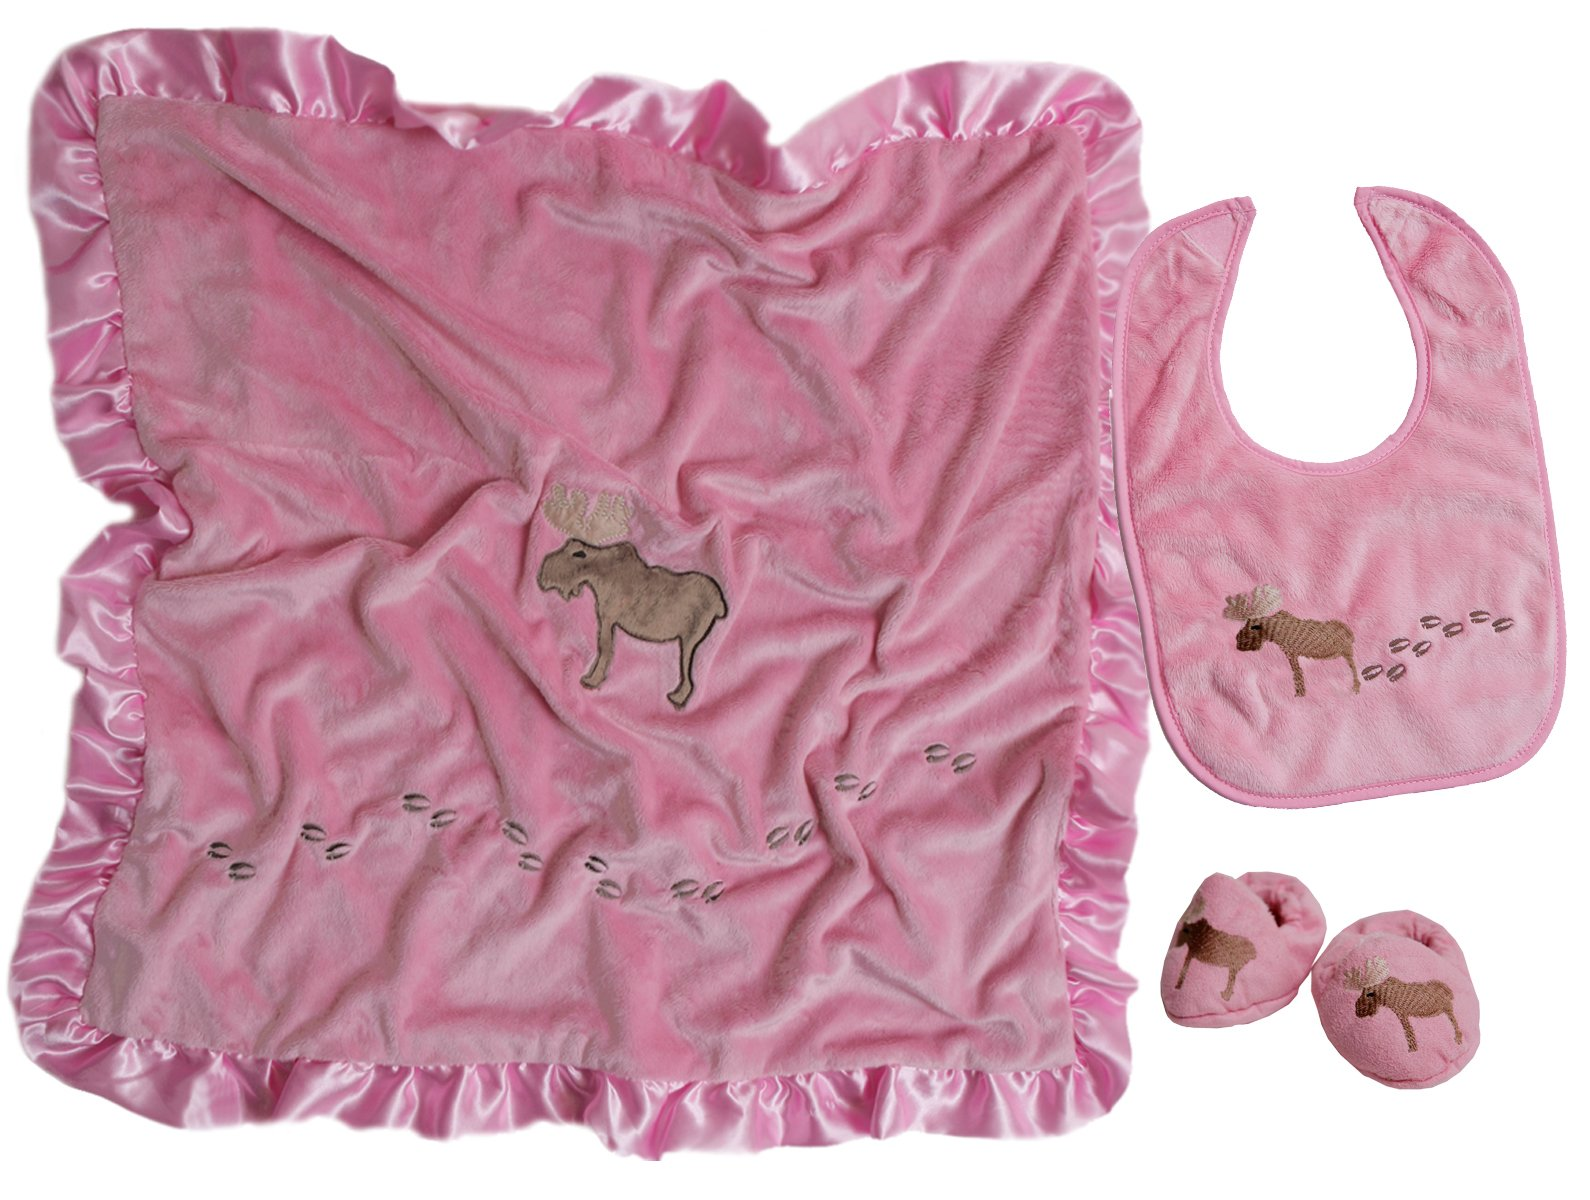 Carstens Moose Boxed Baby-Gift-Sets, Pink